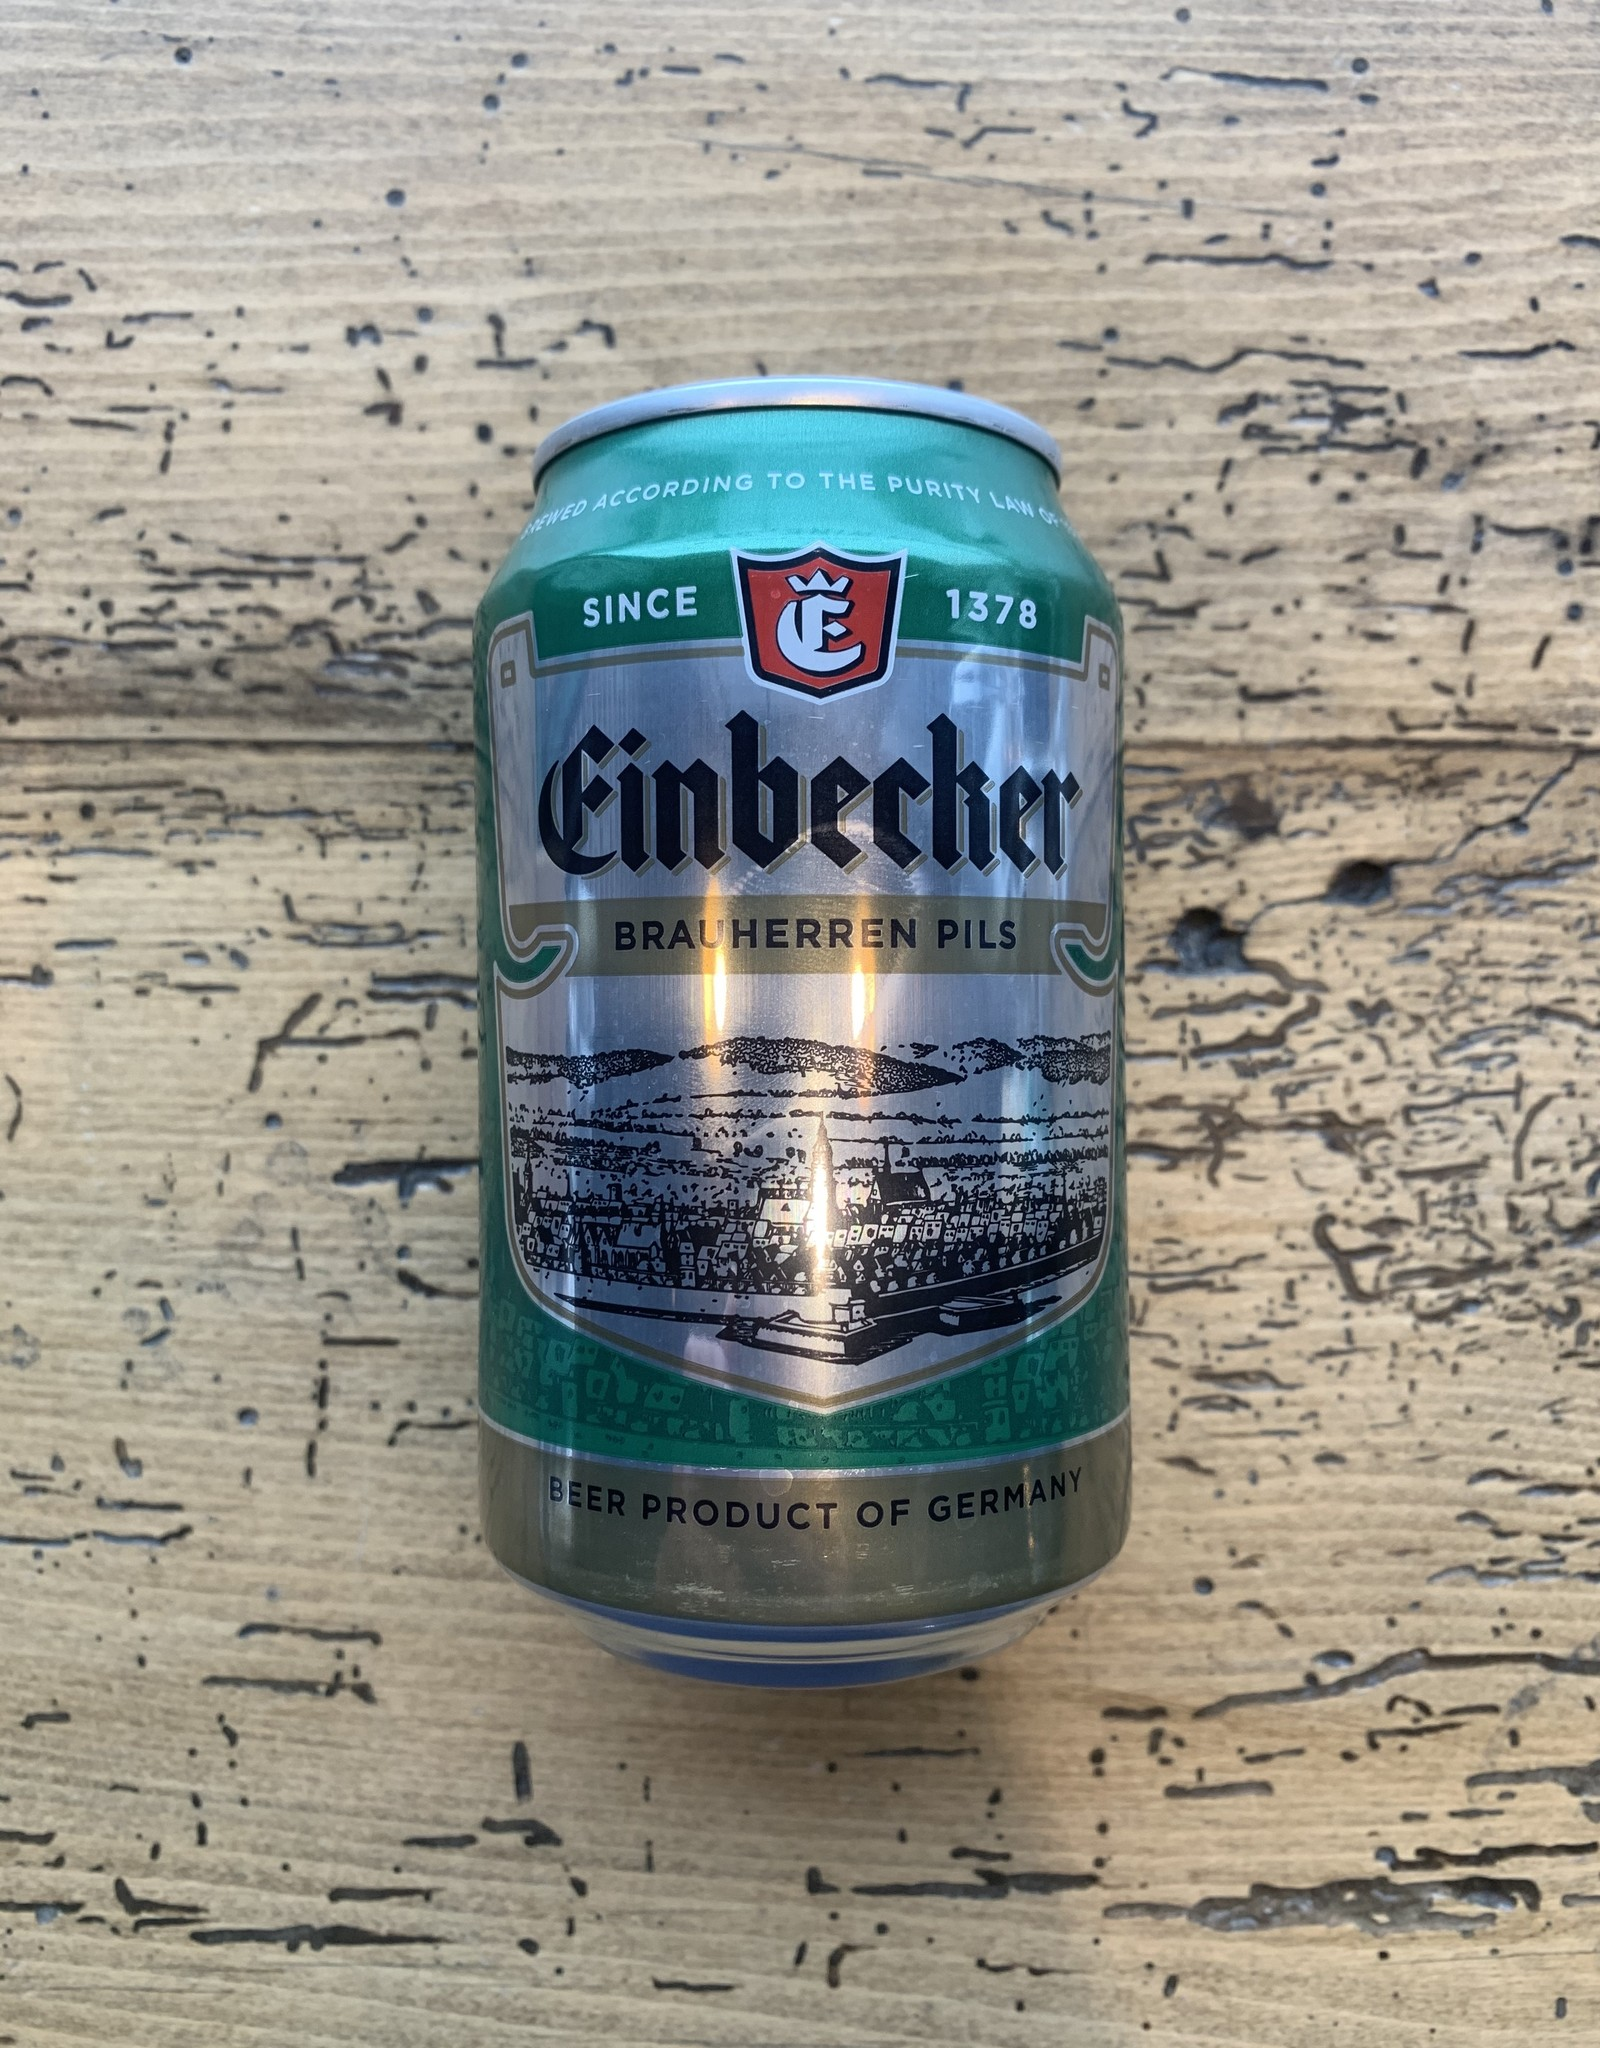 Einbecker Brauherren Pils 6pk single